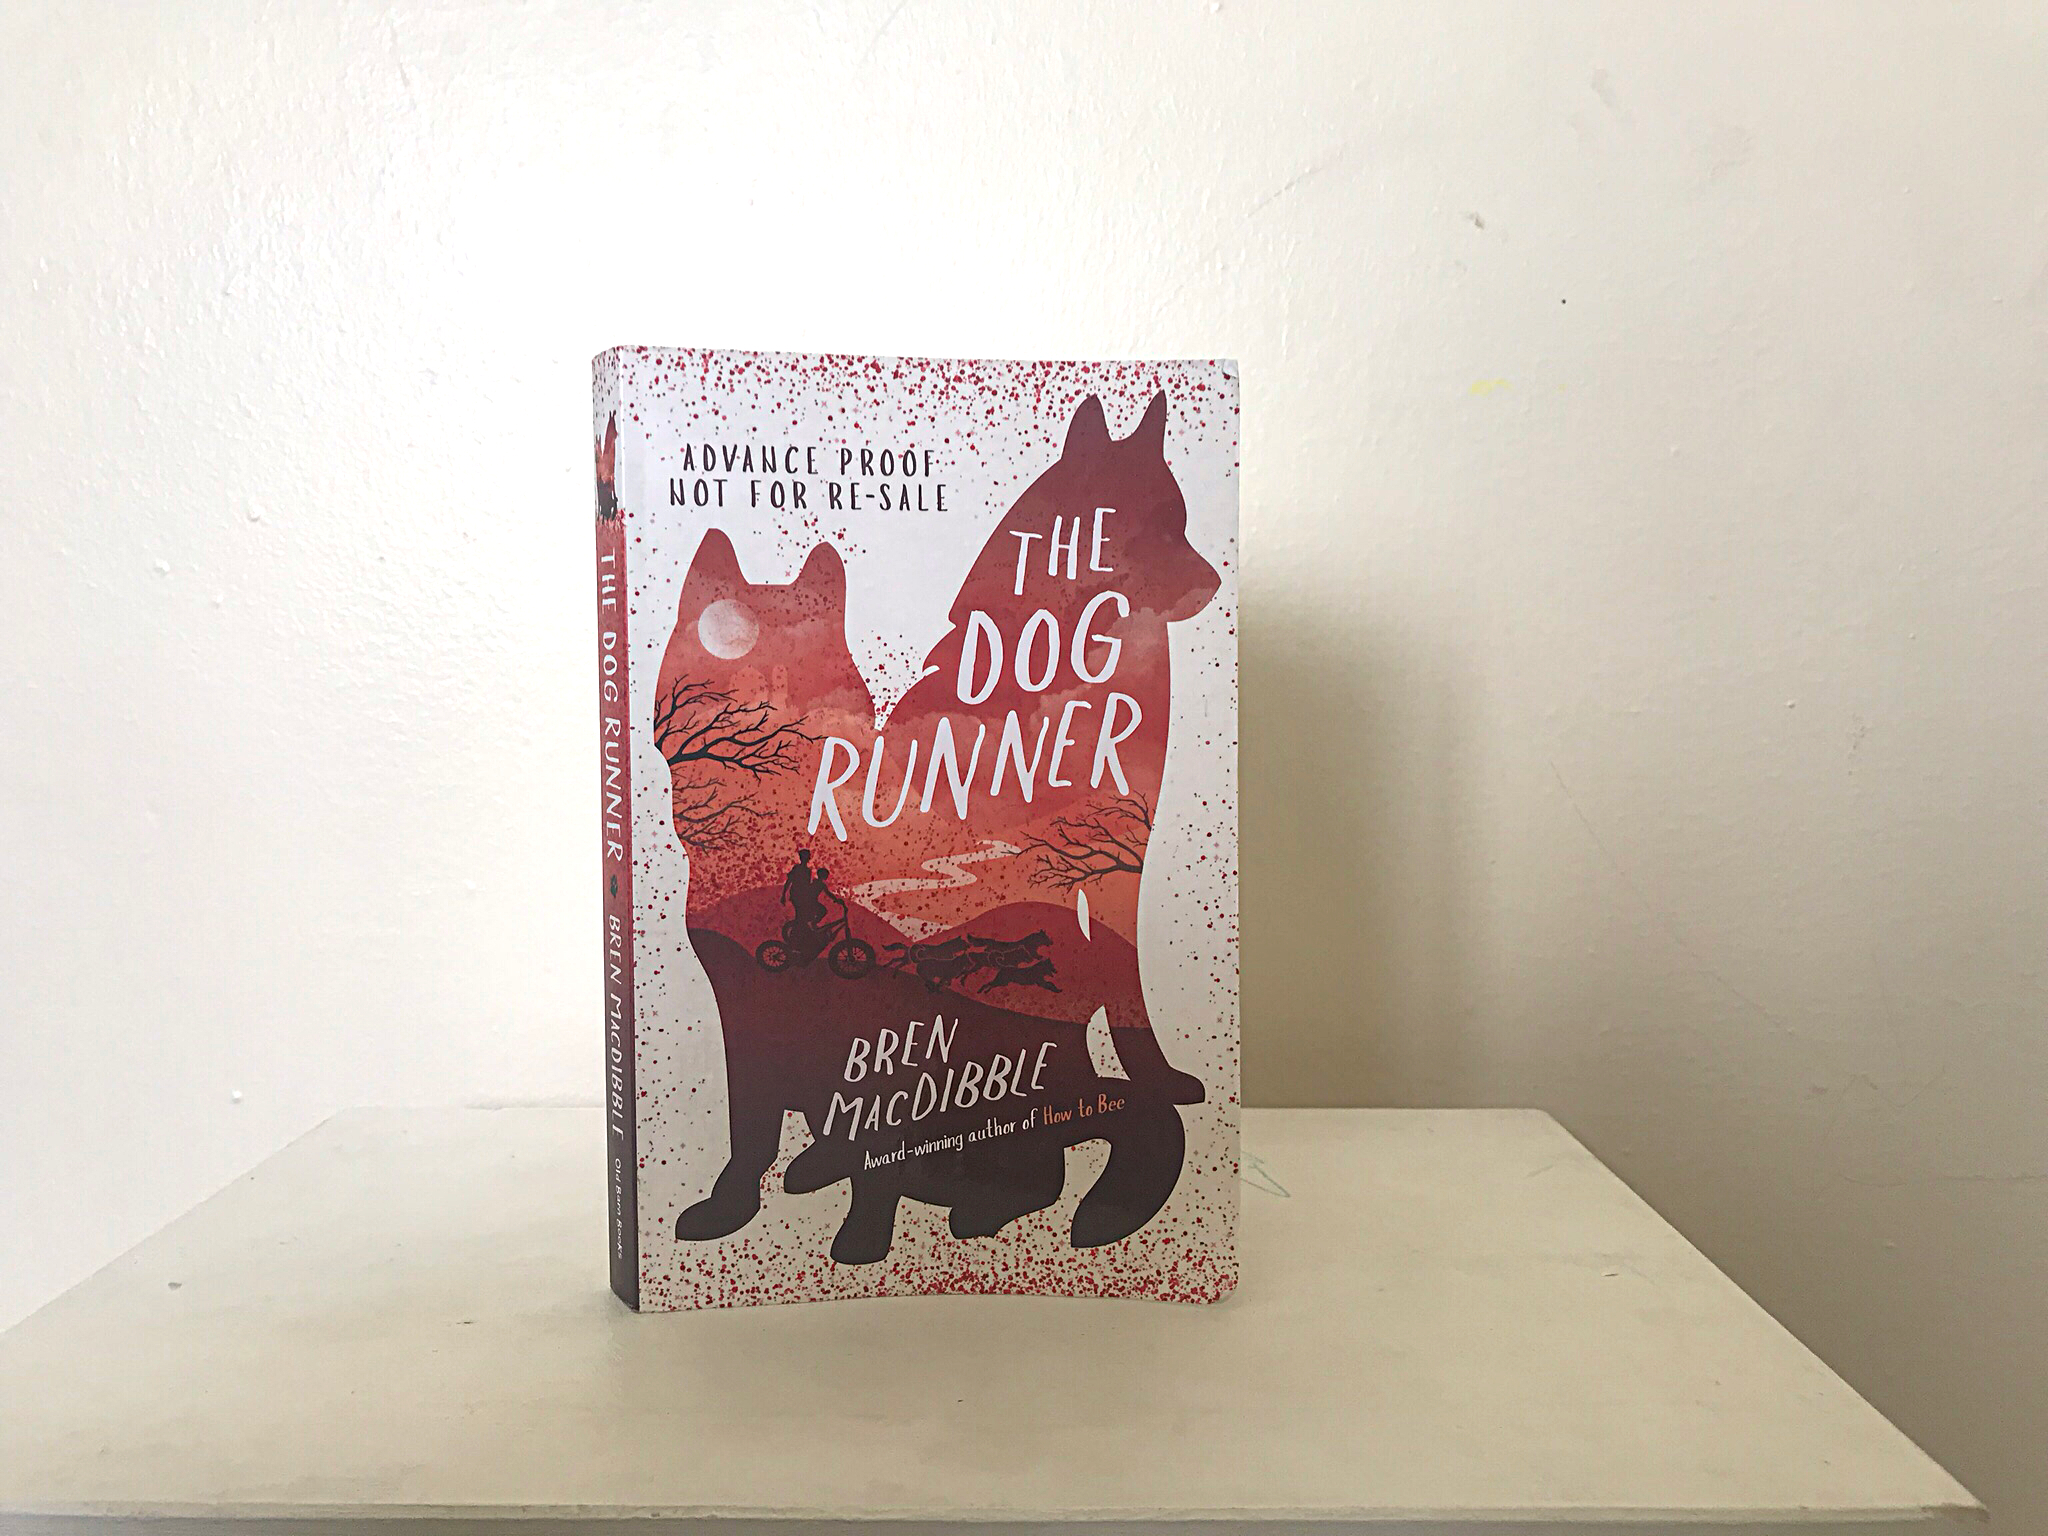 A picture of a book called the dog runner